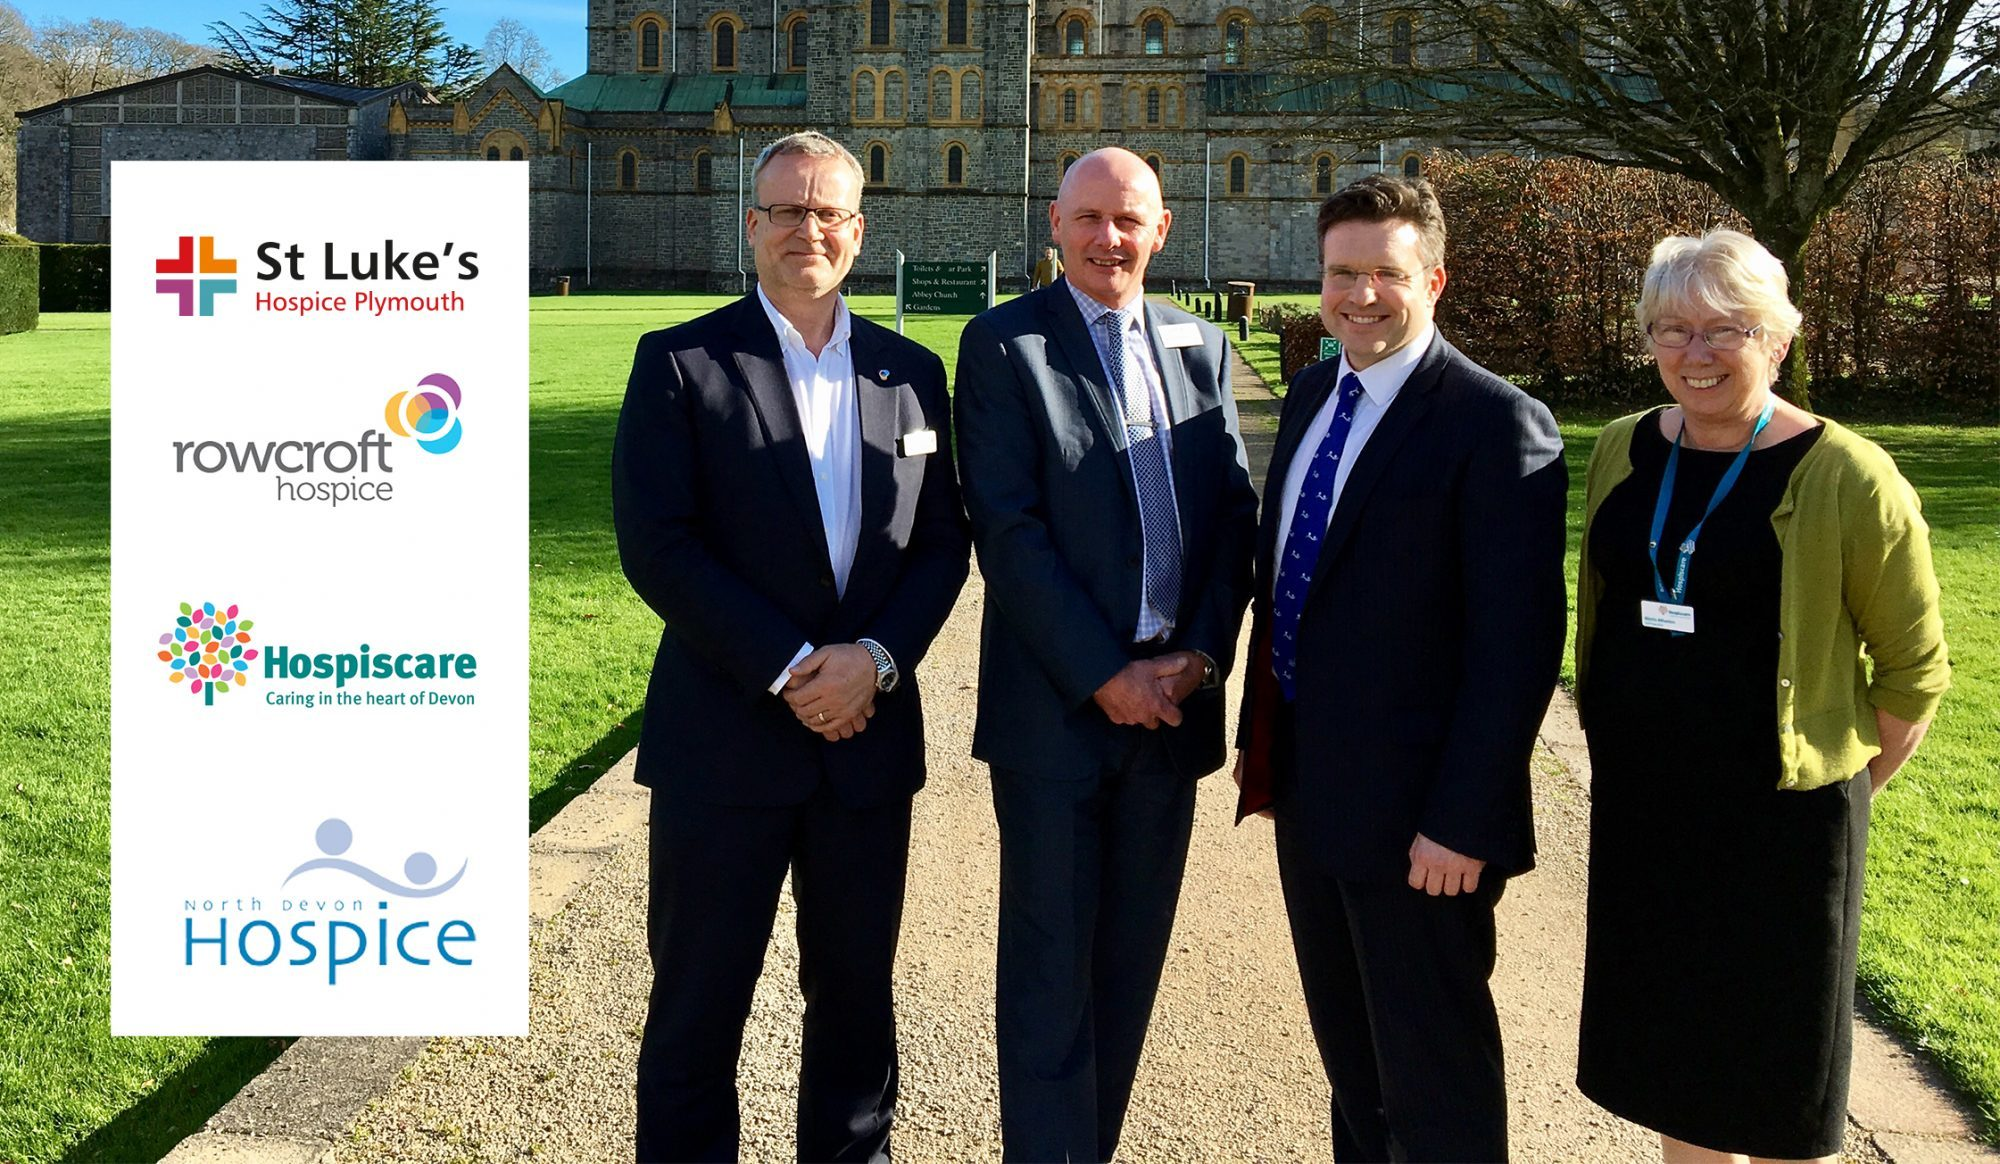 Rowcroft Hospice Government Funding for Devon Hospices